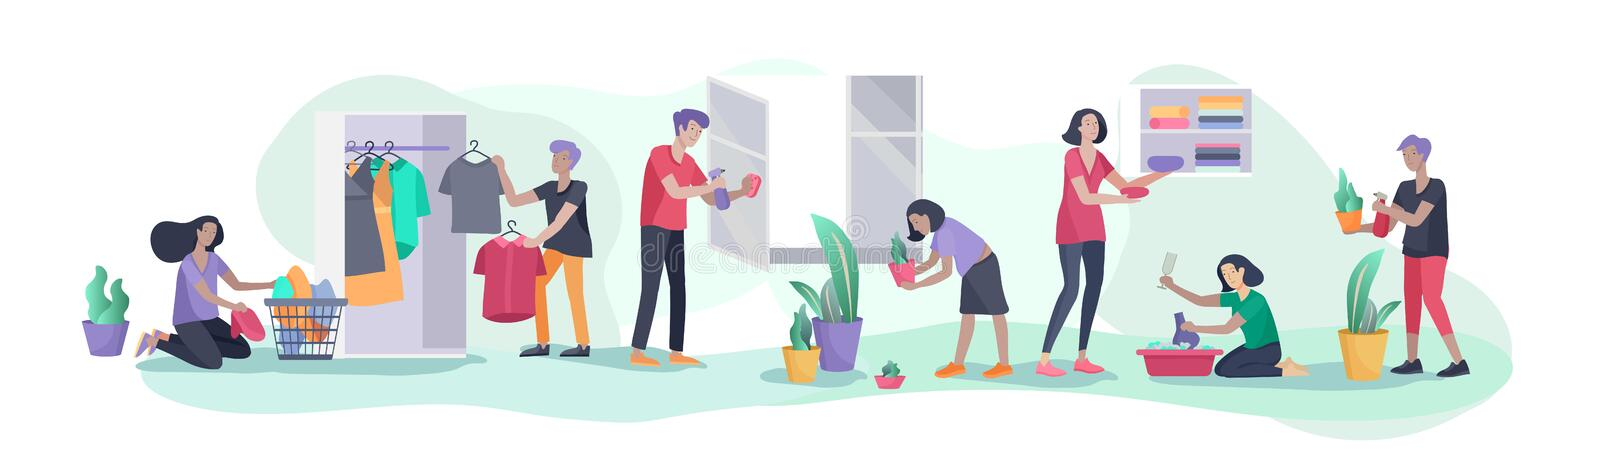 Scene with big family doing housework, kids helping parents with home cleaning, washing dishes, fold clothes, cleaning vector illustration